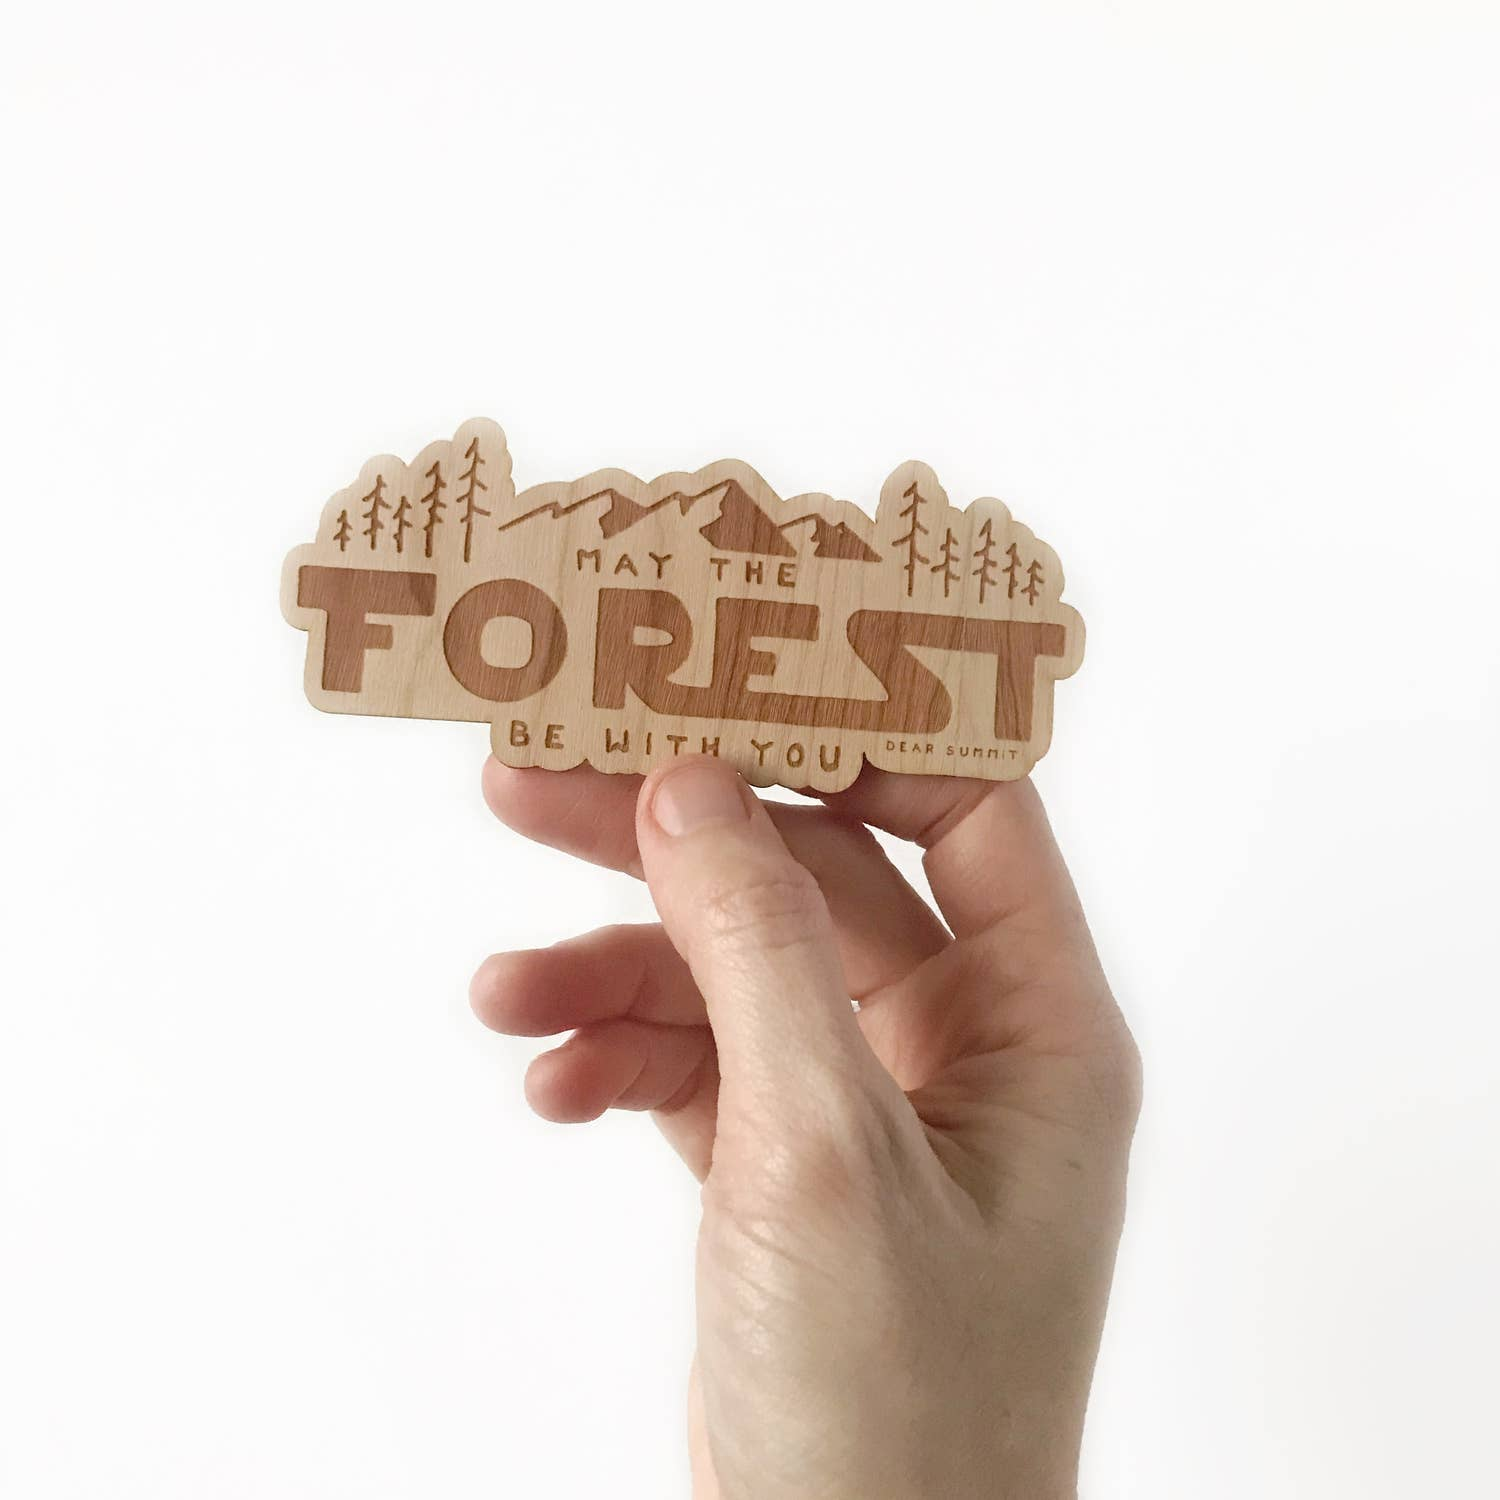 'May the Forest be with You' Wooden Sticker - The Lake and Company